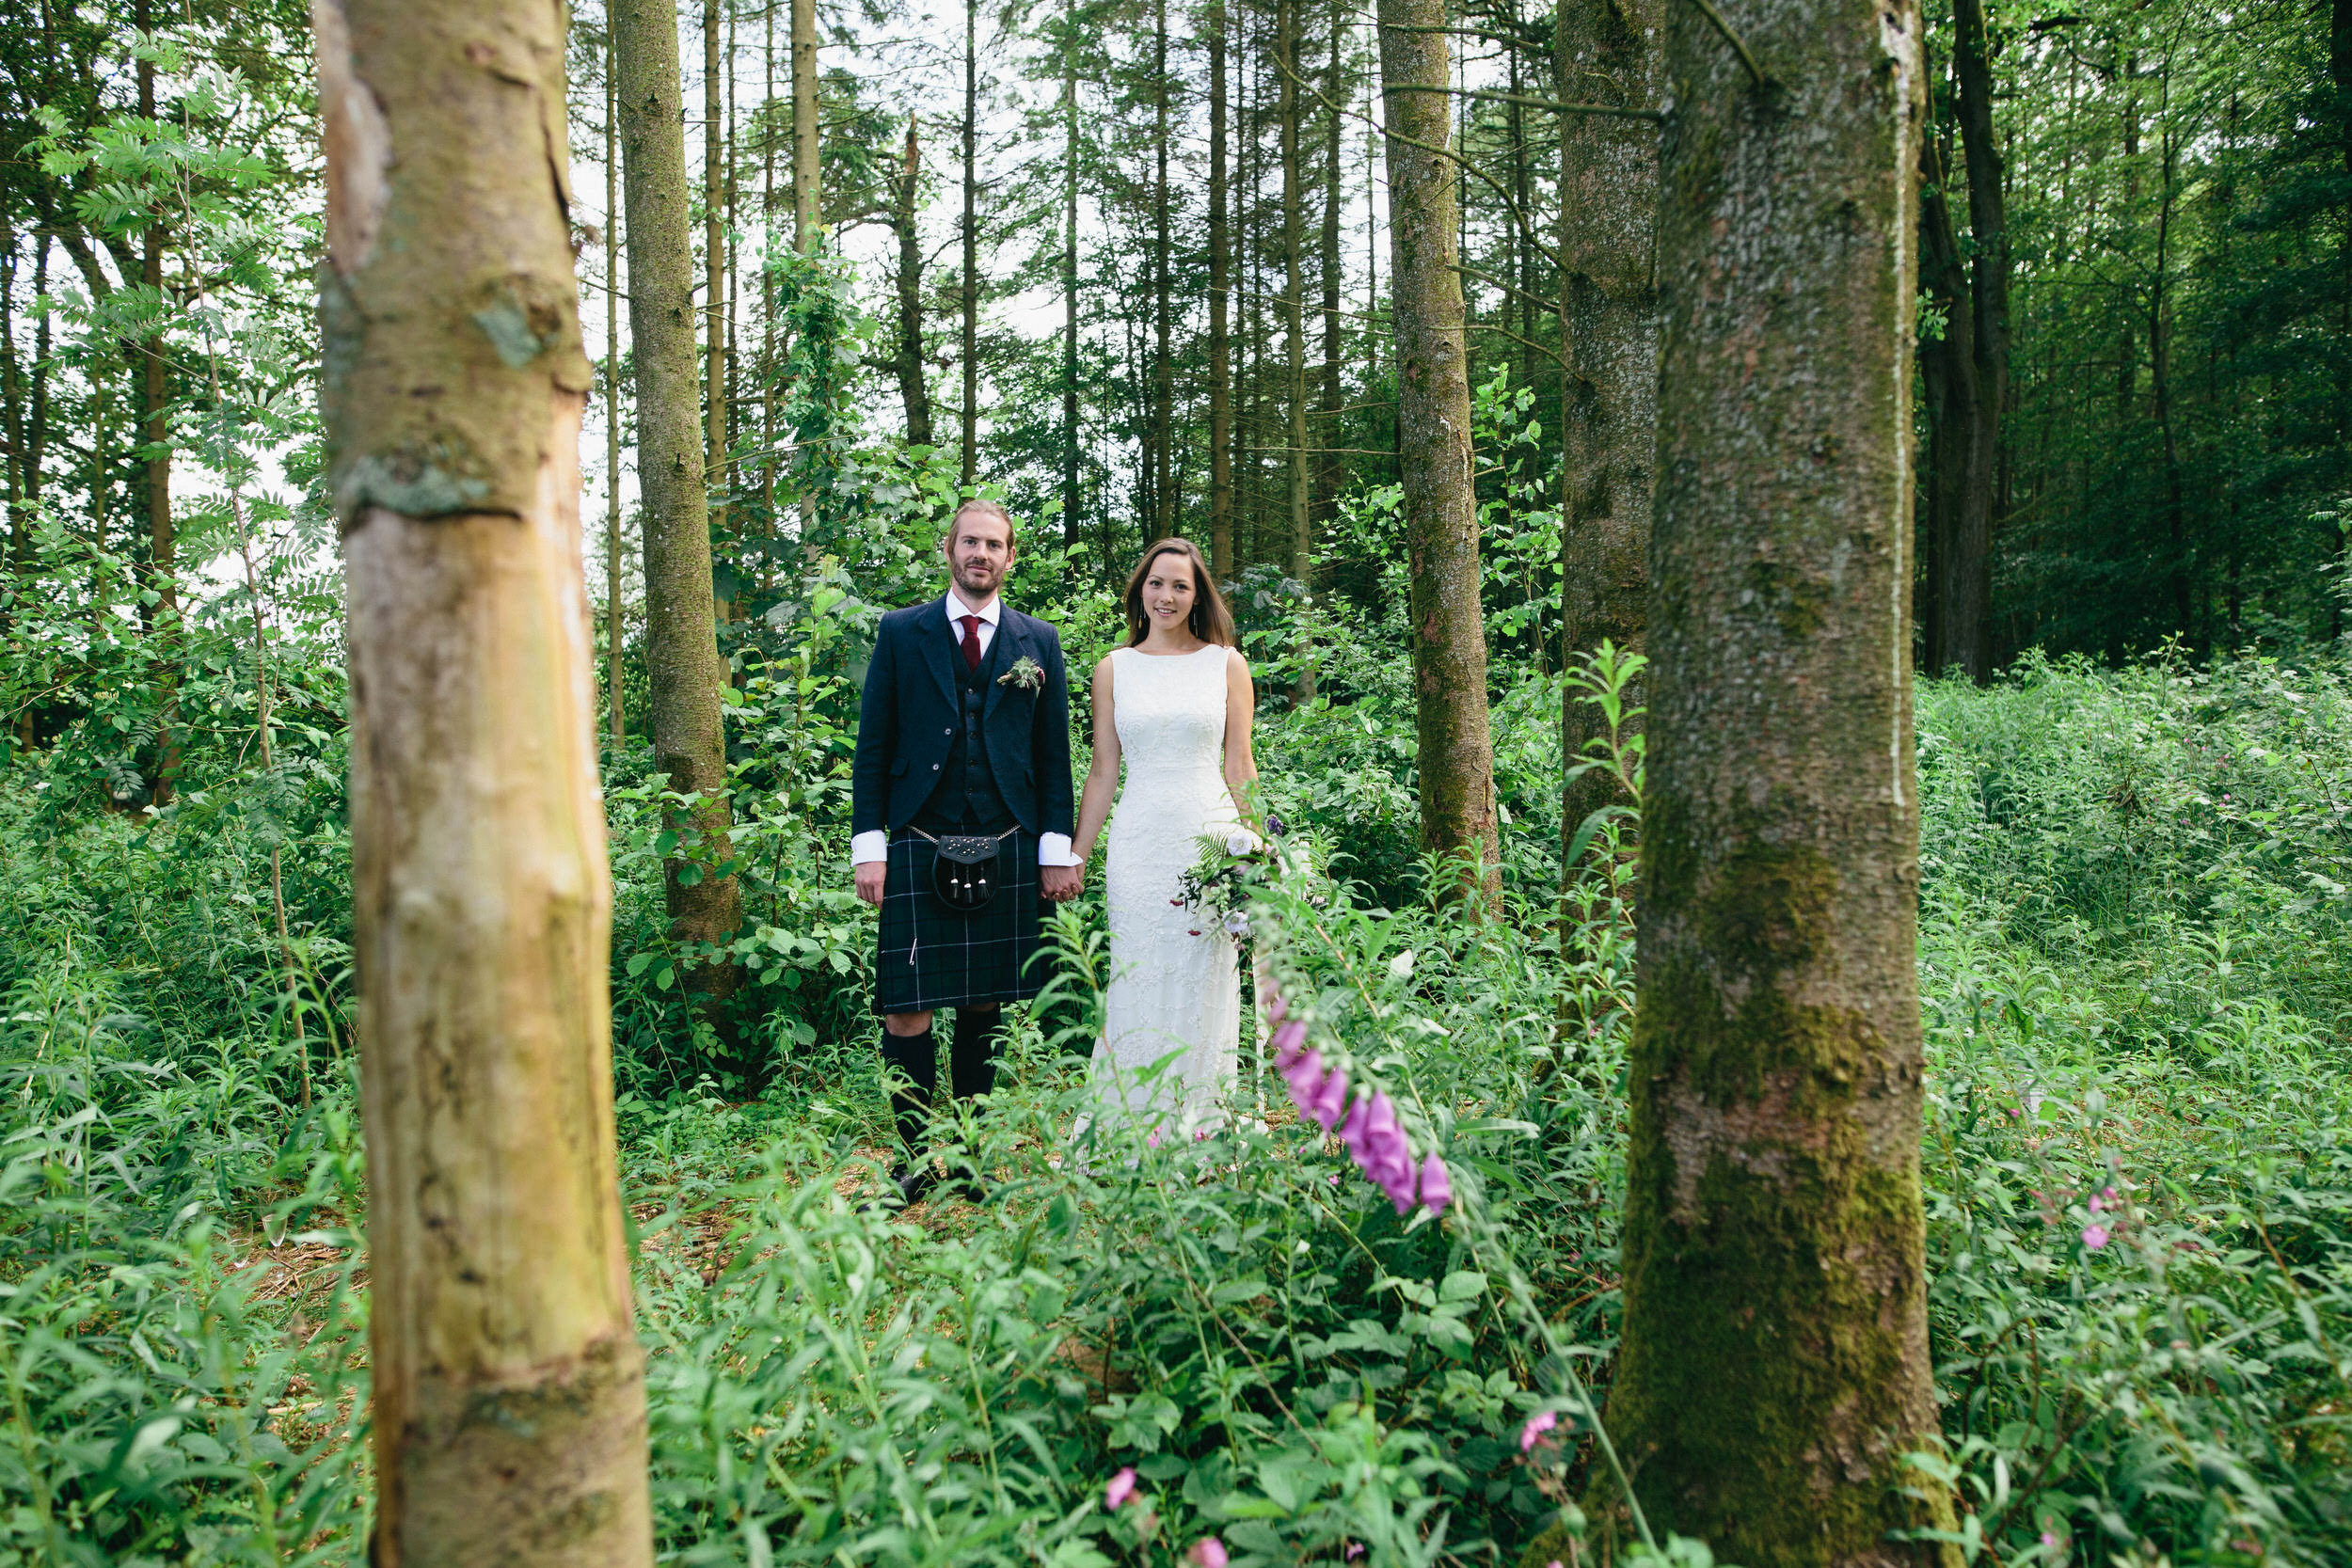 Alternative Quirky Wedding Photographer Scotland Borders Edinburgh 077.jpg